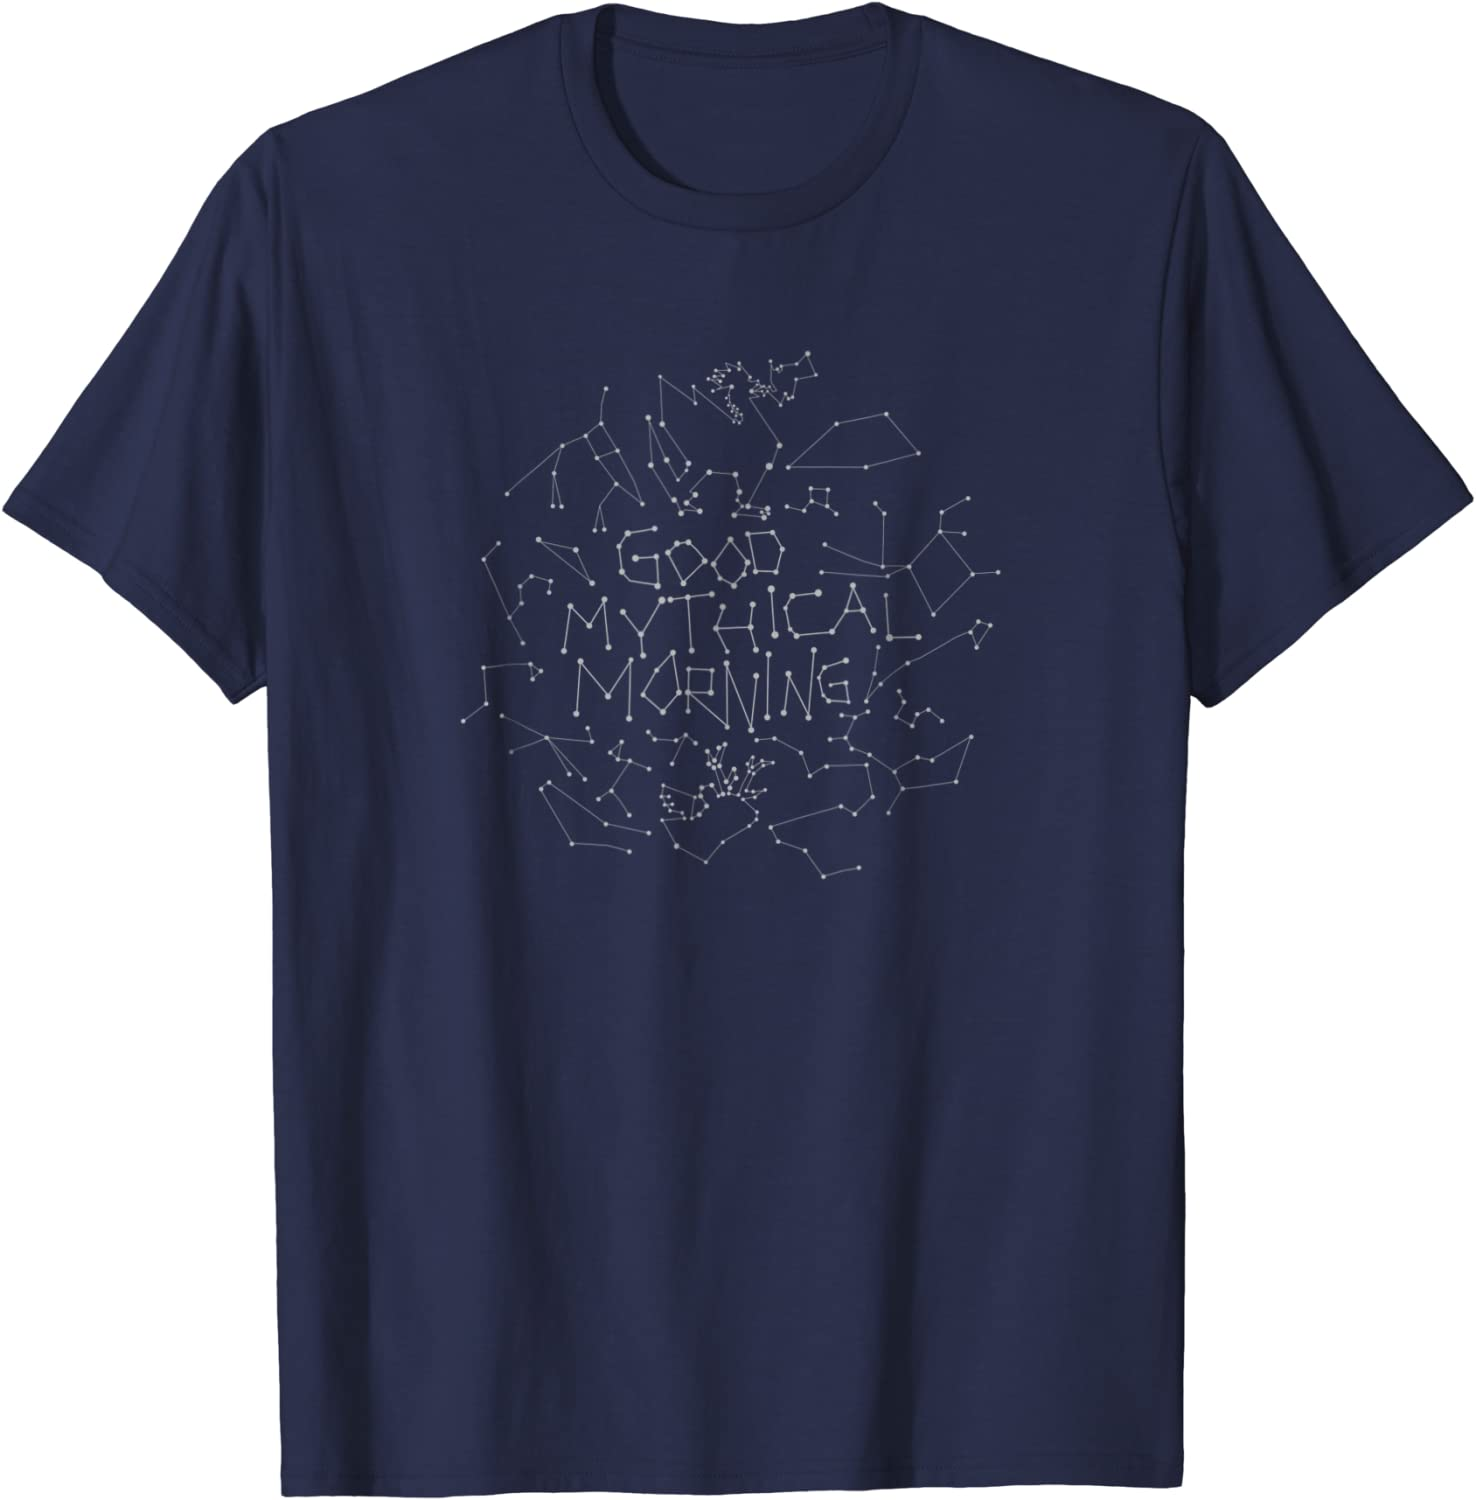 Good Mythical Morning Constellation Tee